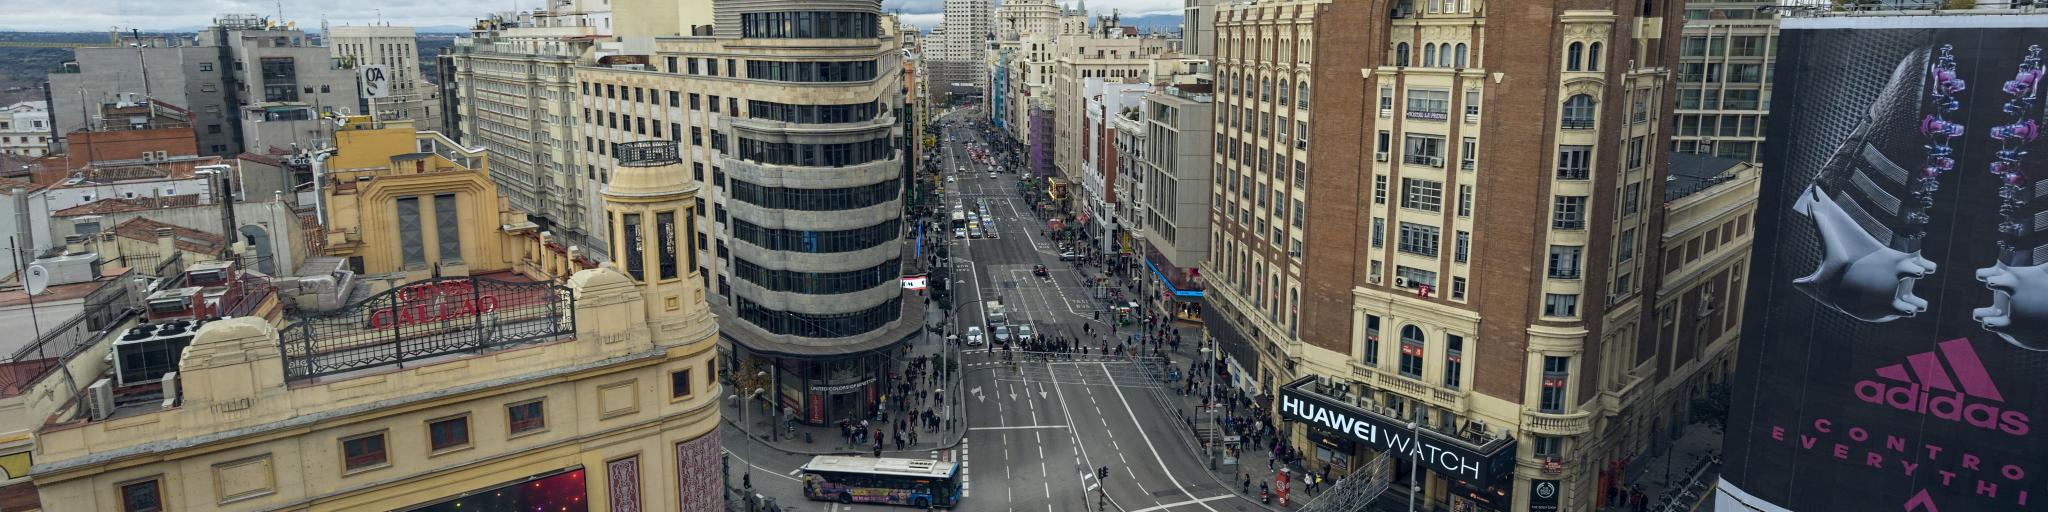 The bustling Gran Via is the main thoroughfare in Madrid